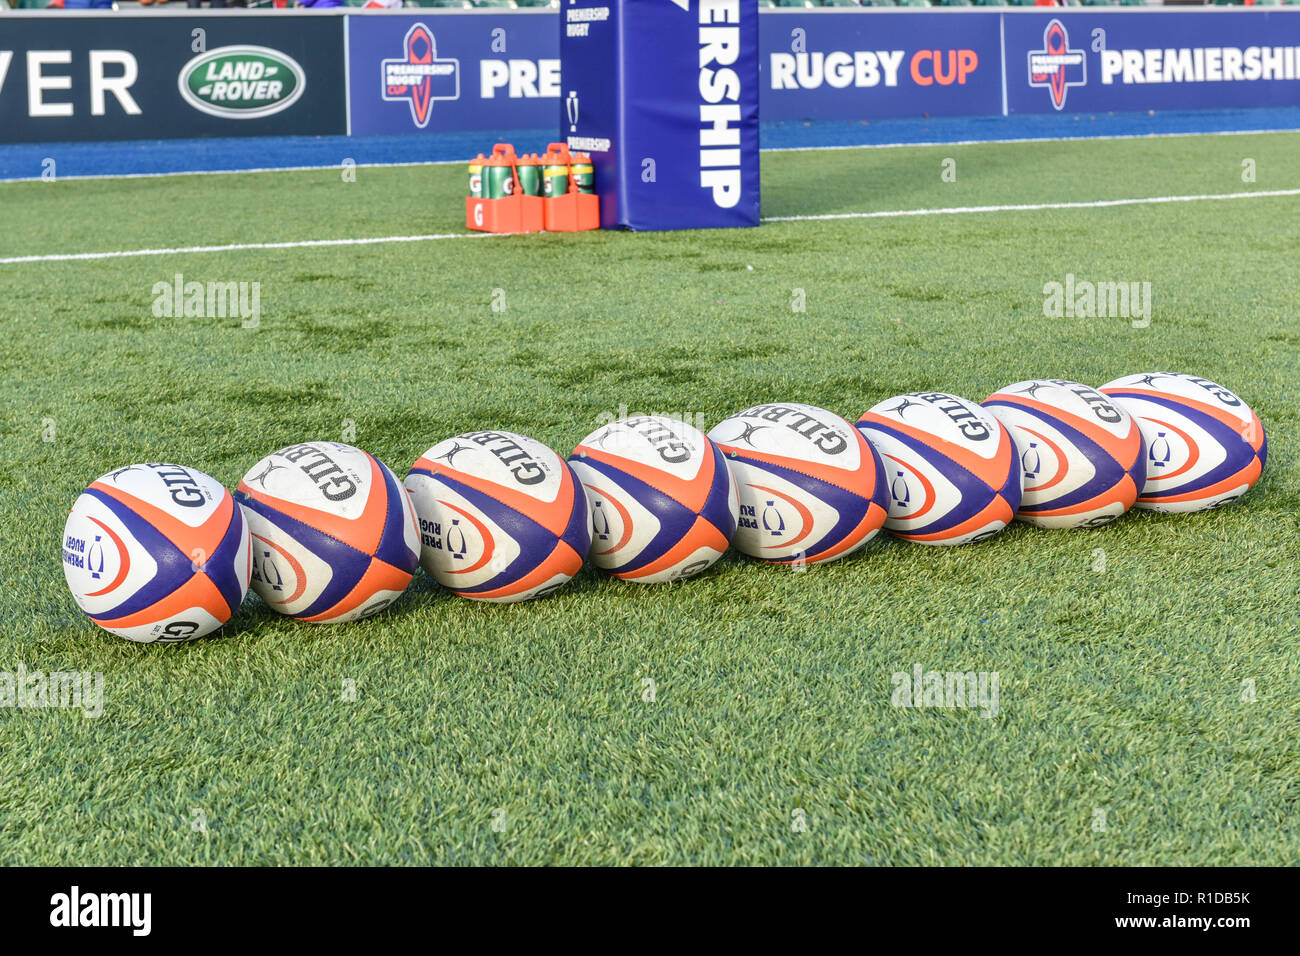 London, UK. 11th Nov 2018. The match official balls during Premiership Rugby Cup Round 3 match between Saracens and Worcester Warriors at Allianz Park on Sunday, 11 November 2018. LONDON ENGLAND.  (Editorial use only, license required for commercial use. No use in betting, games or a single club/league/player publications.) Credit: Taka Wu/Alamy Live News - Stock Image